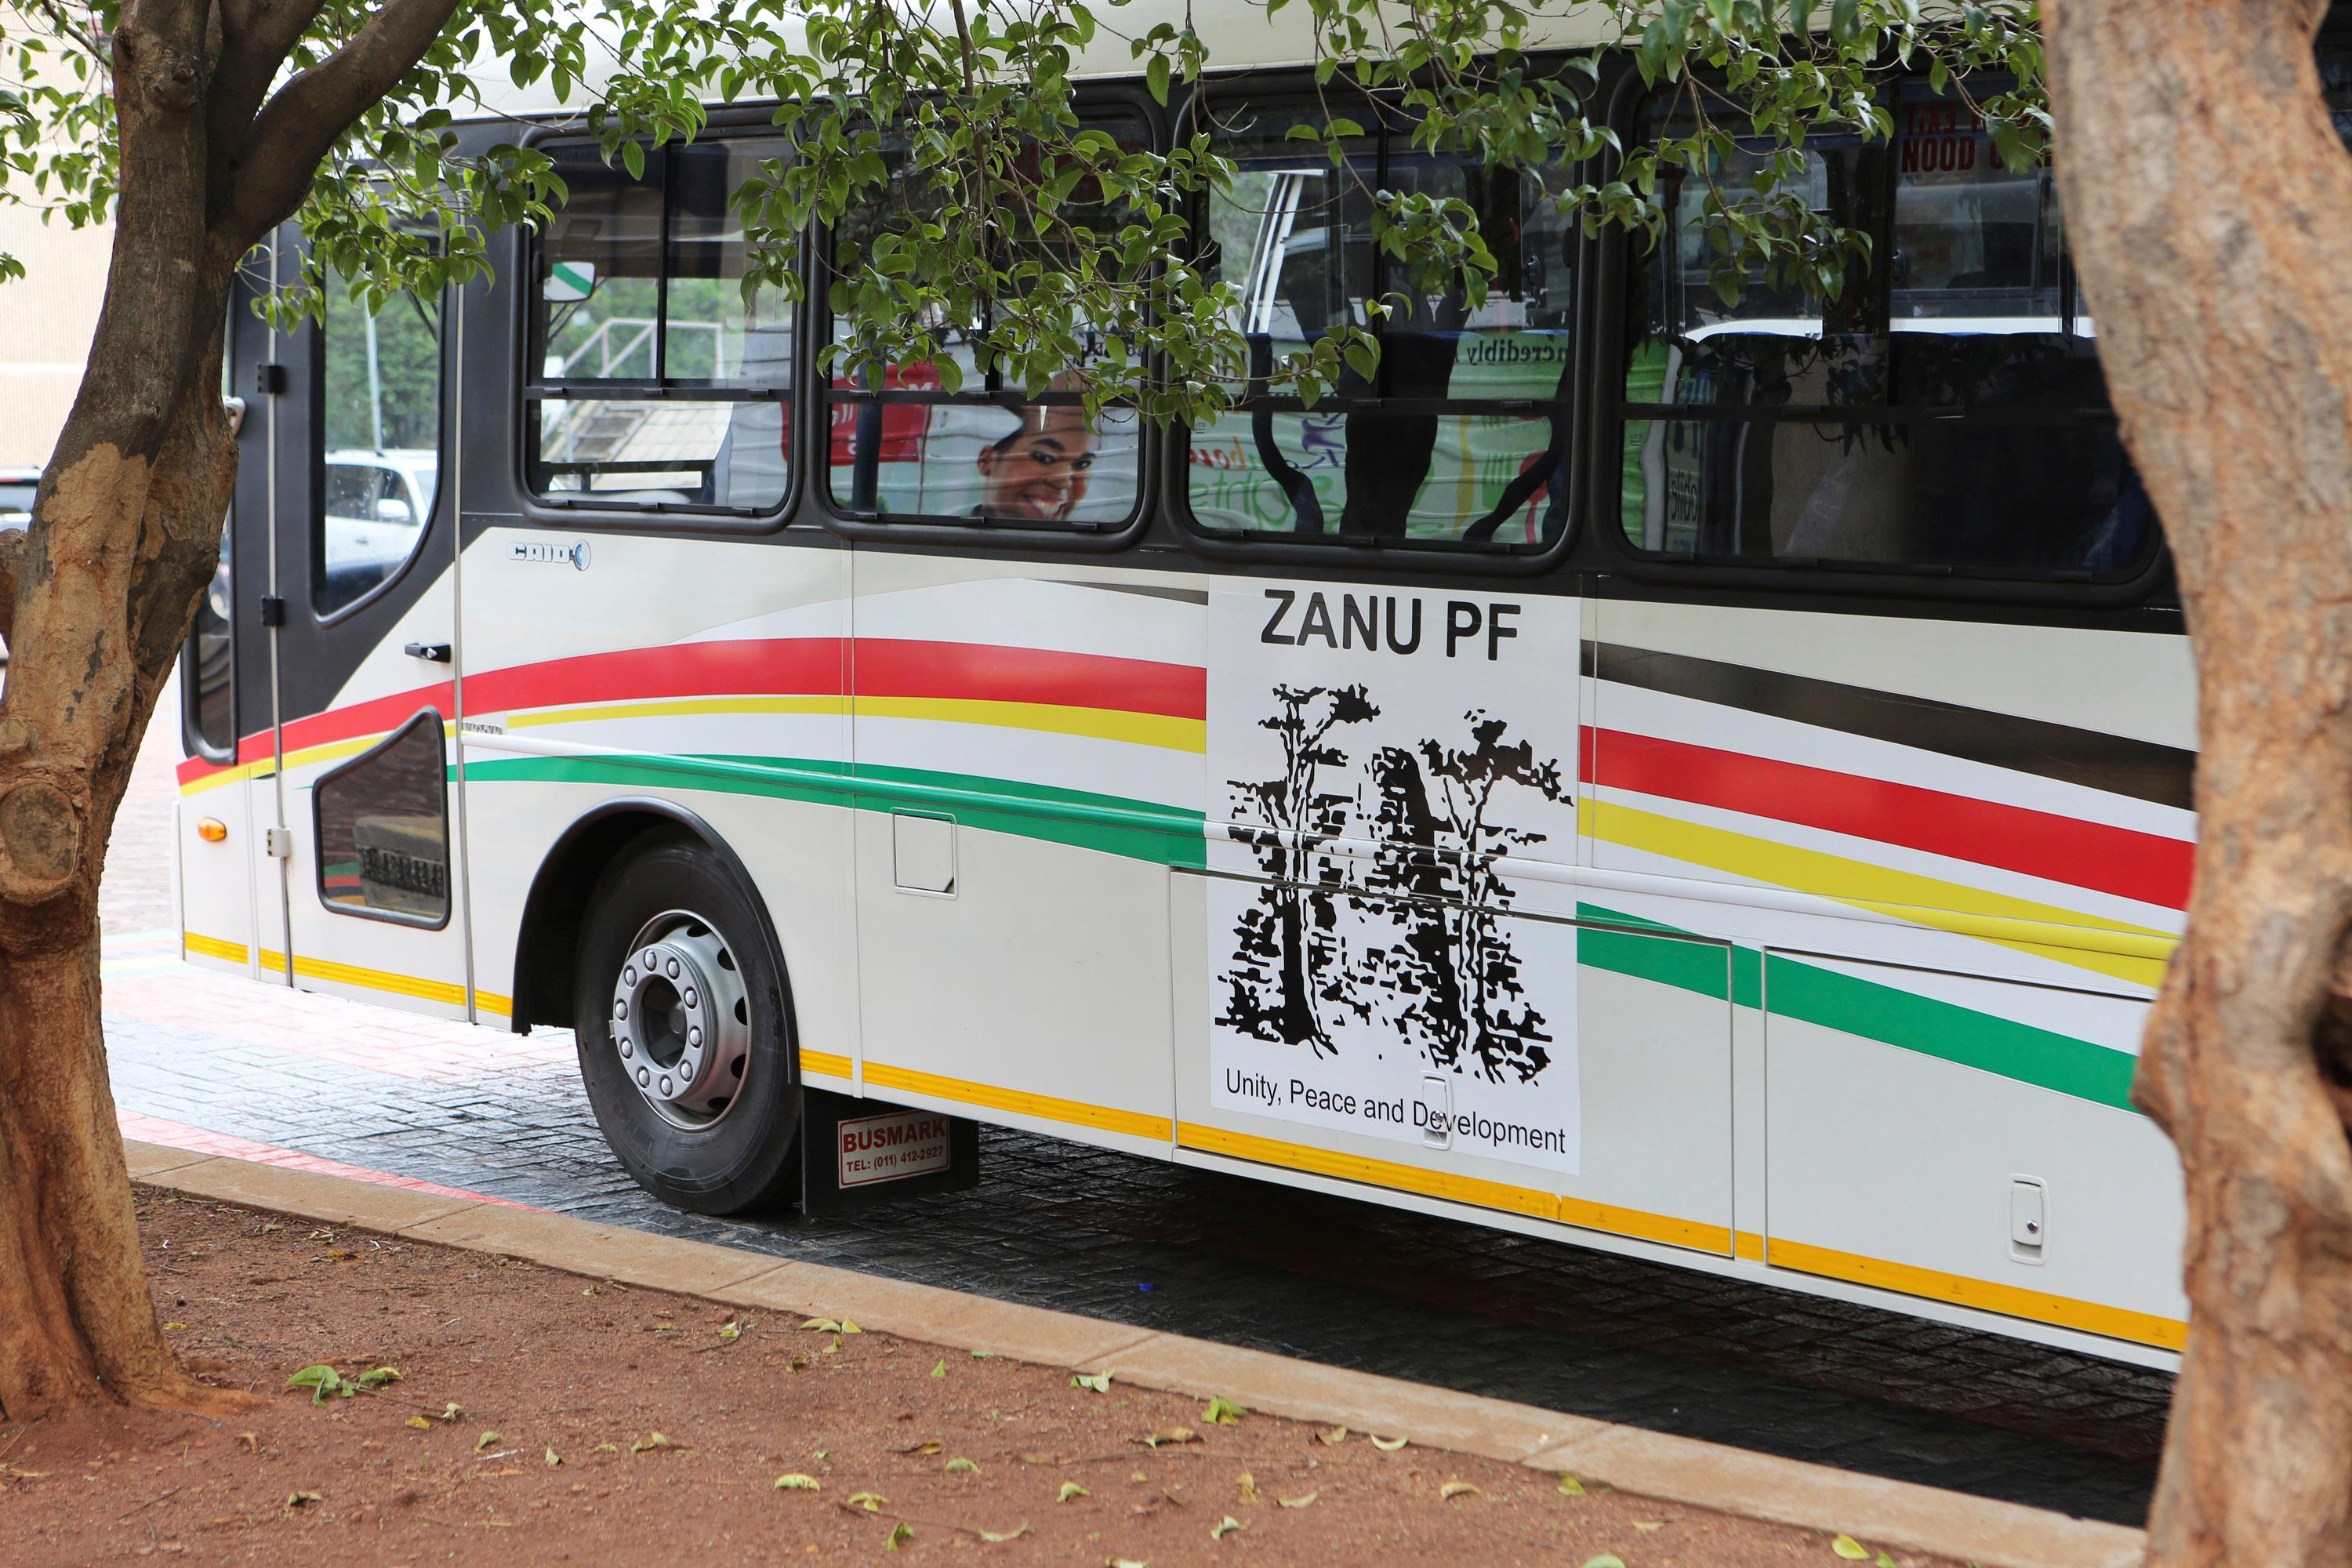 A bus belonging to the Zanu pf party is parked outside the party headquarters in Harare, Zimbabwe Sunday, Nov. 19, 2017. Clinging to his now virtually powerless post, longtime Zimbabwe President Robert Mugabe on Sunday was set to discuss his expected exit with the army commander who put him under house arrest, while the ruling party prepared to recall the world's oldest head of state as its leader. (AP Photo/Tsvangirayi Mukwazhi)